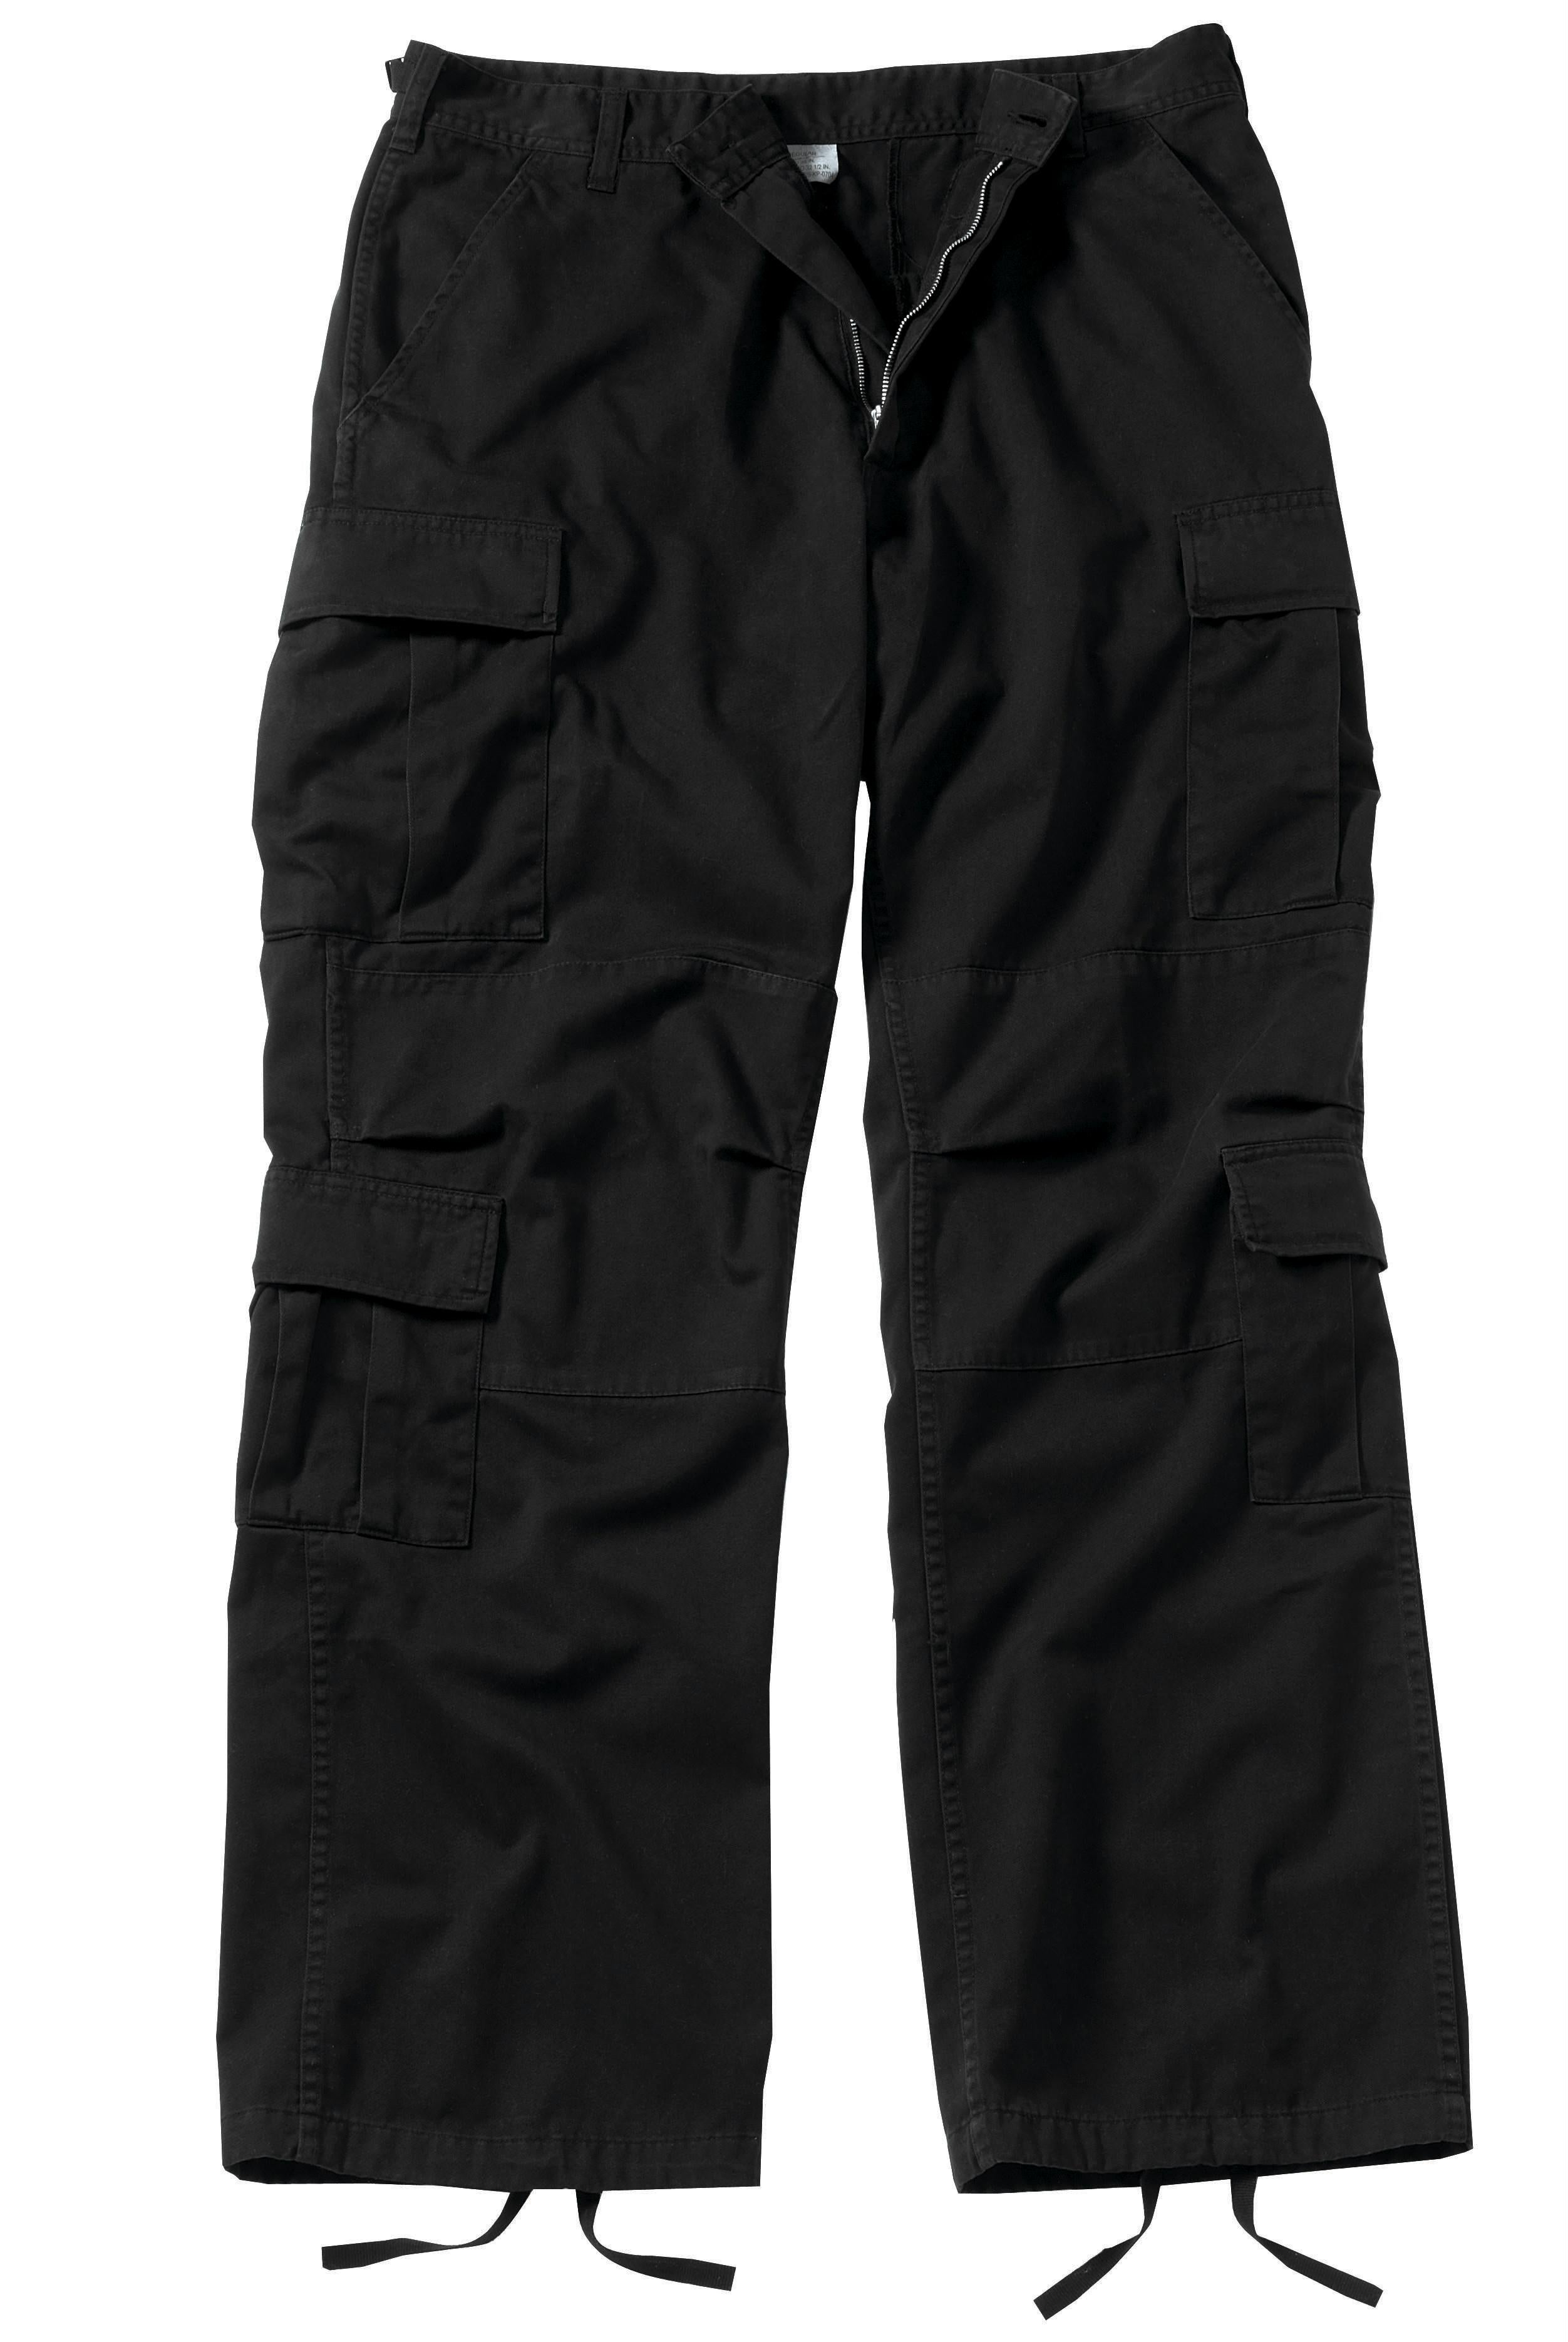 Rothco Vintage Paratrooper Fatigue Pants - Black / 2XL